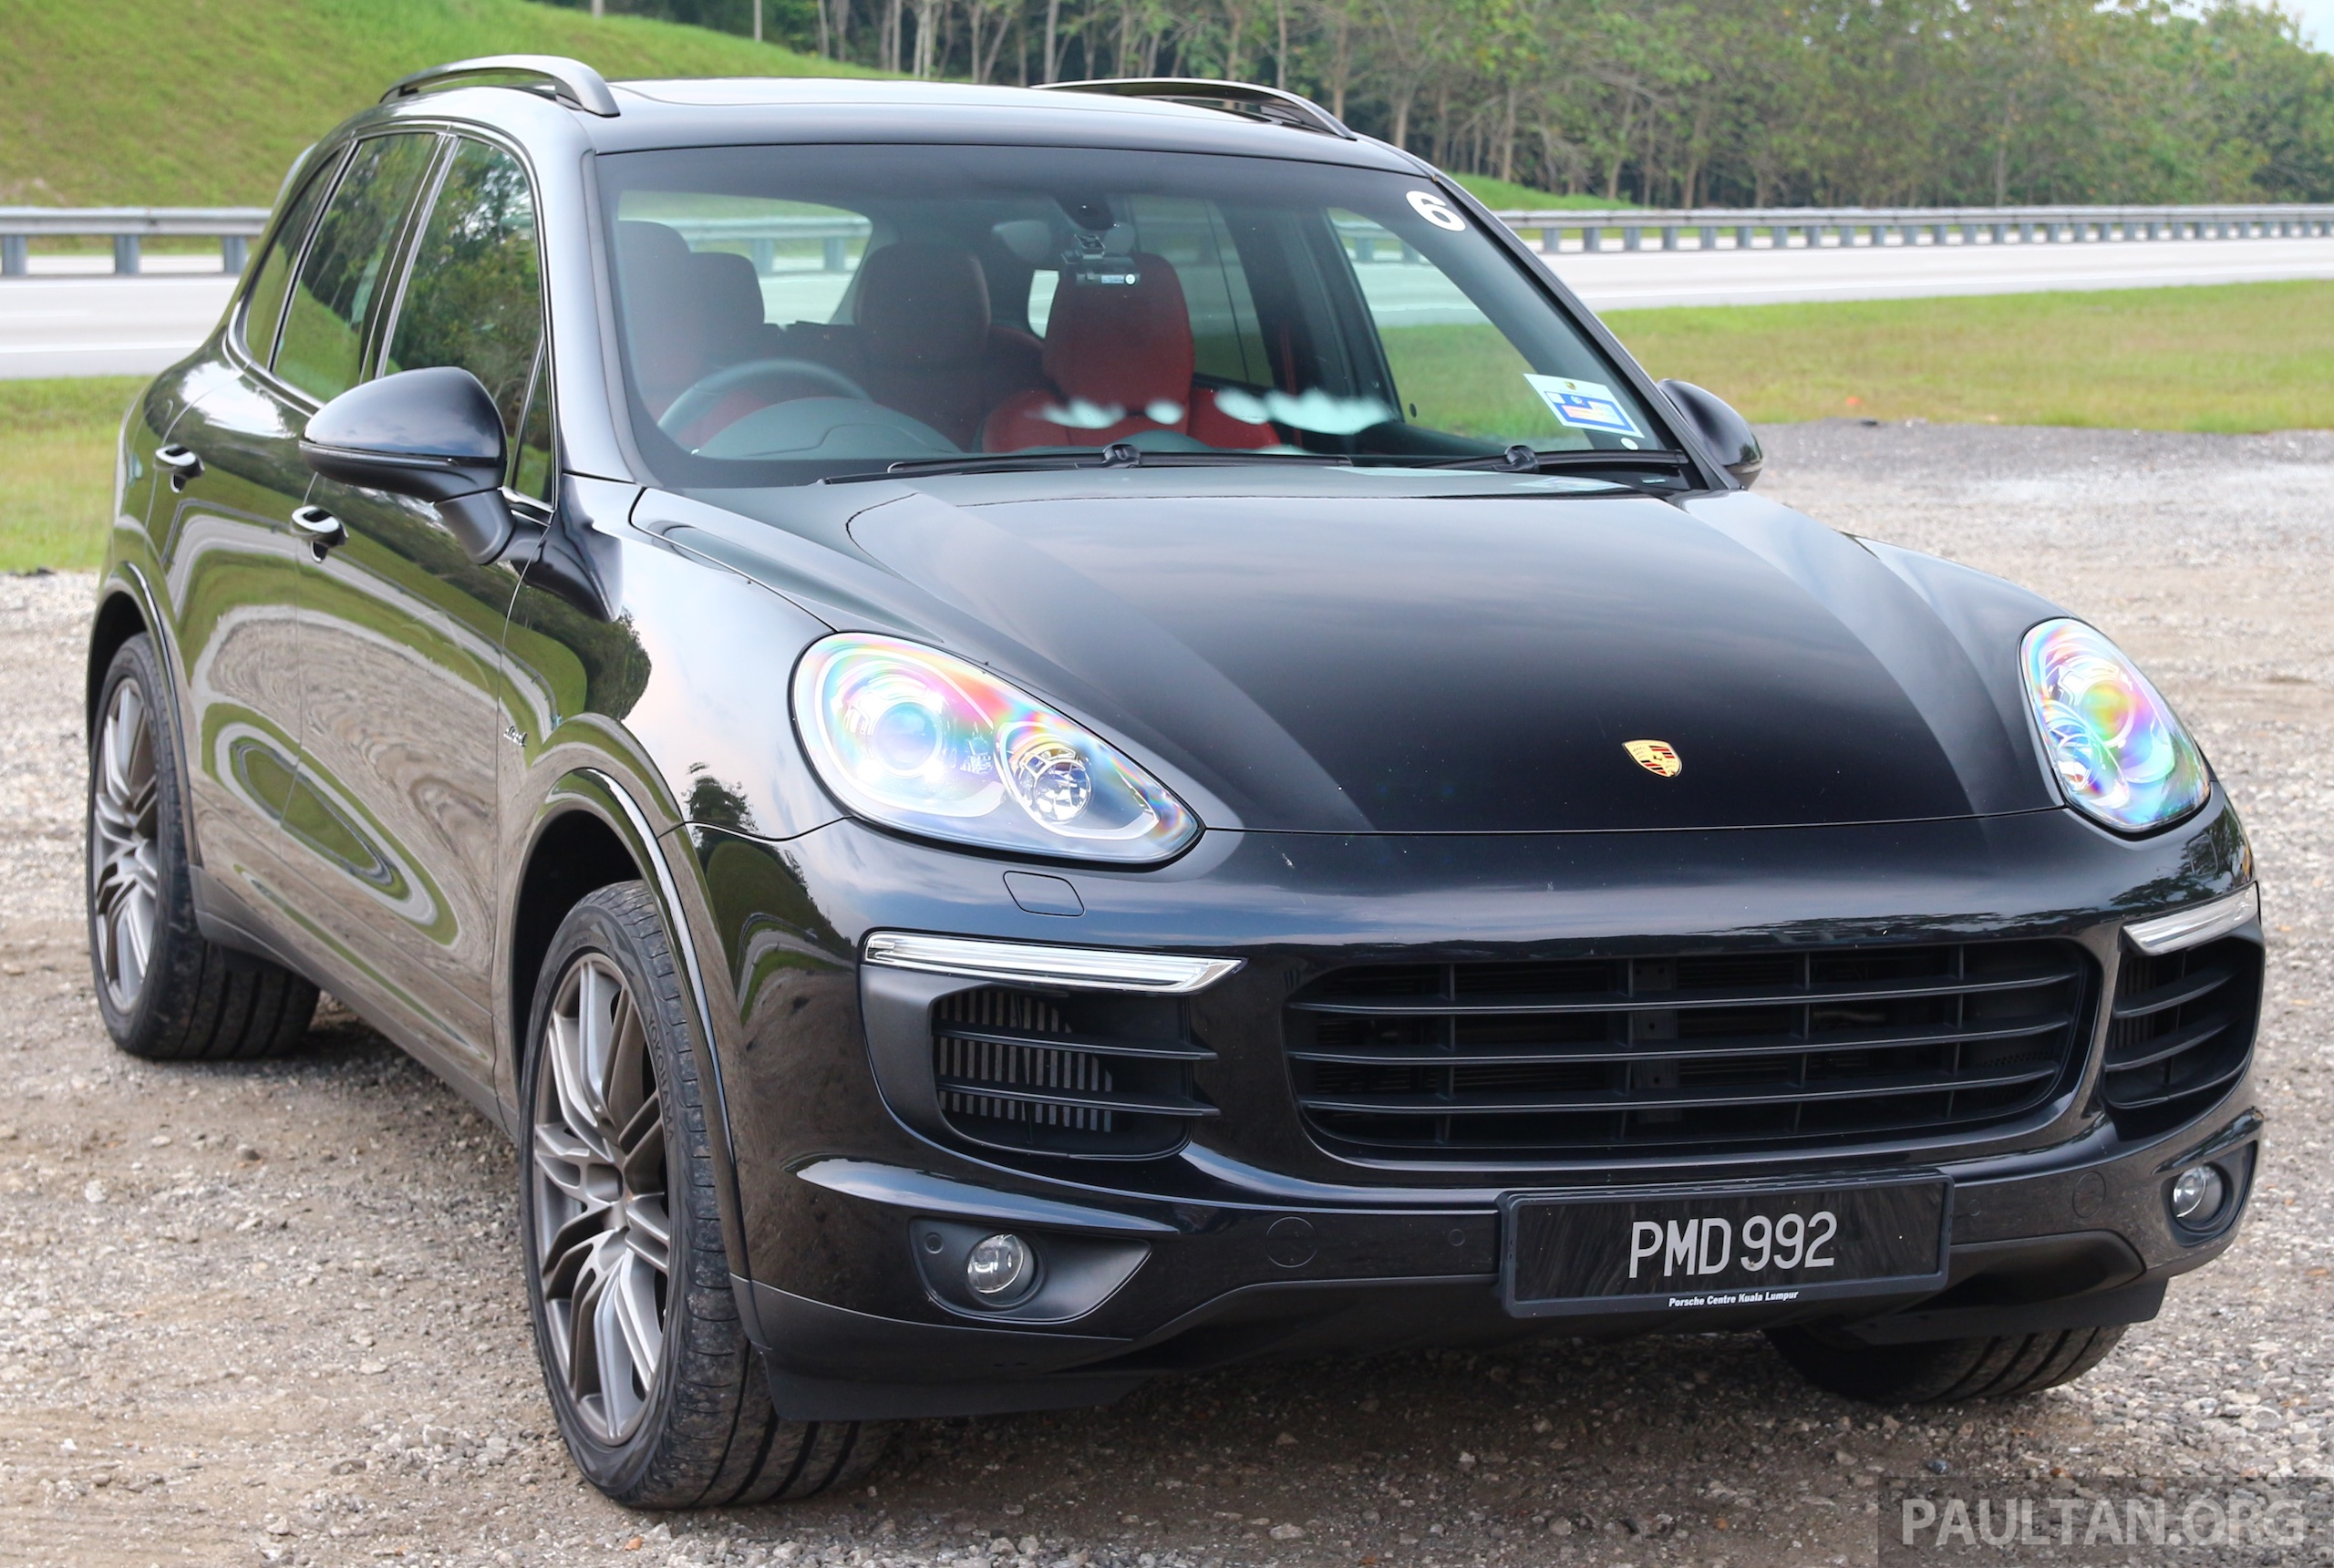 driven porsche cayenne facelift to johor and back image 420806. Black Bedroom Furniture Sets. Home Design Ideas